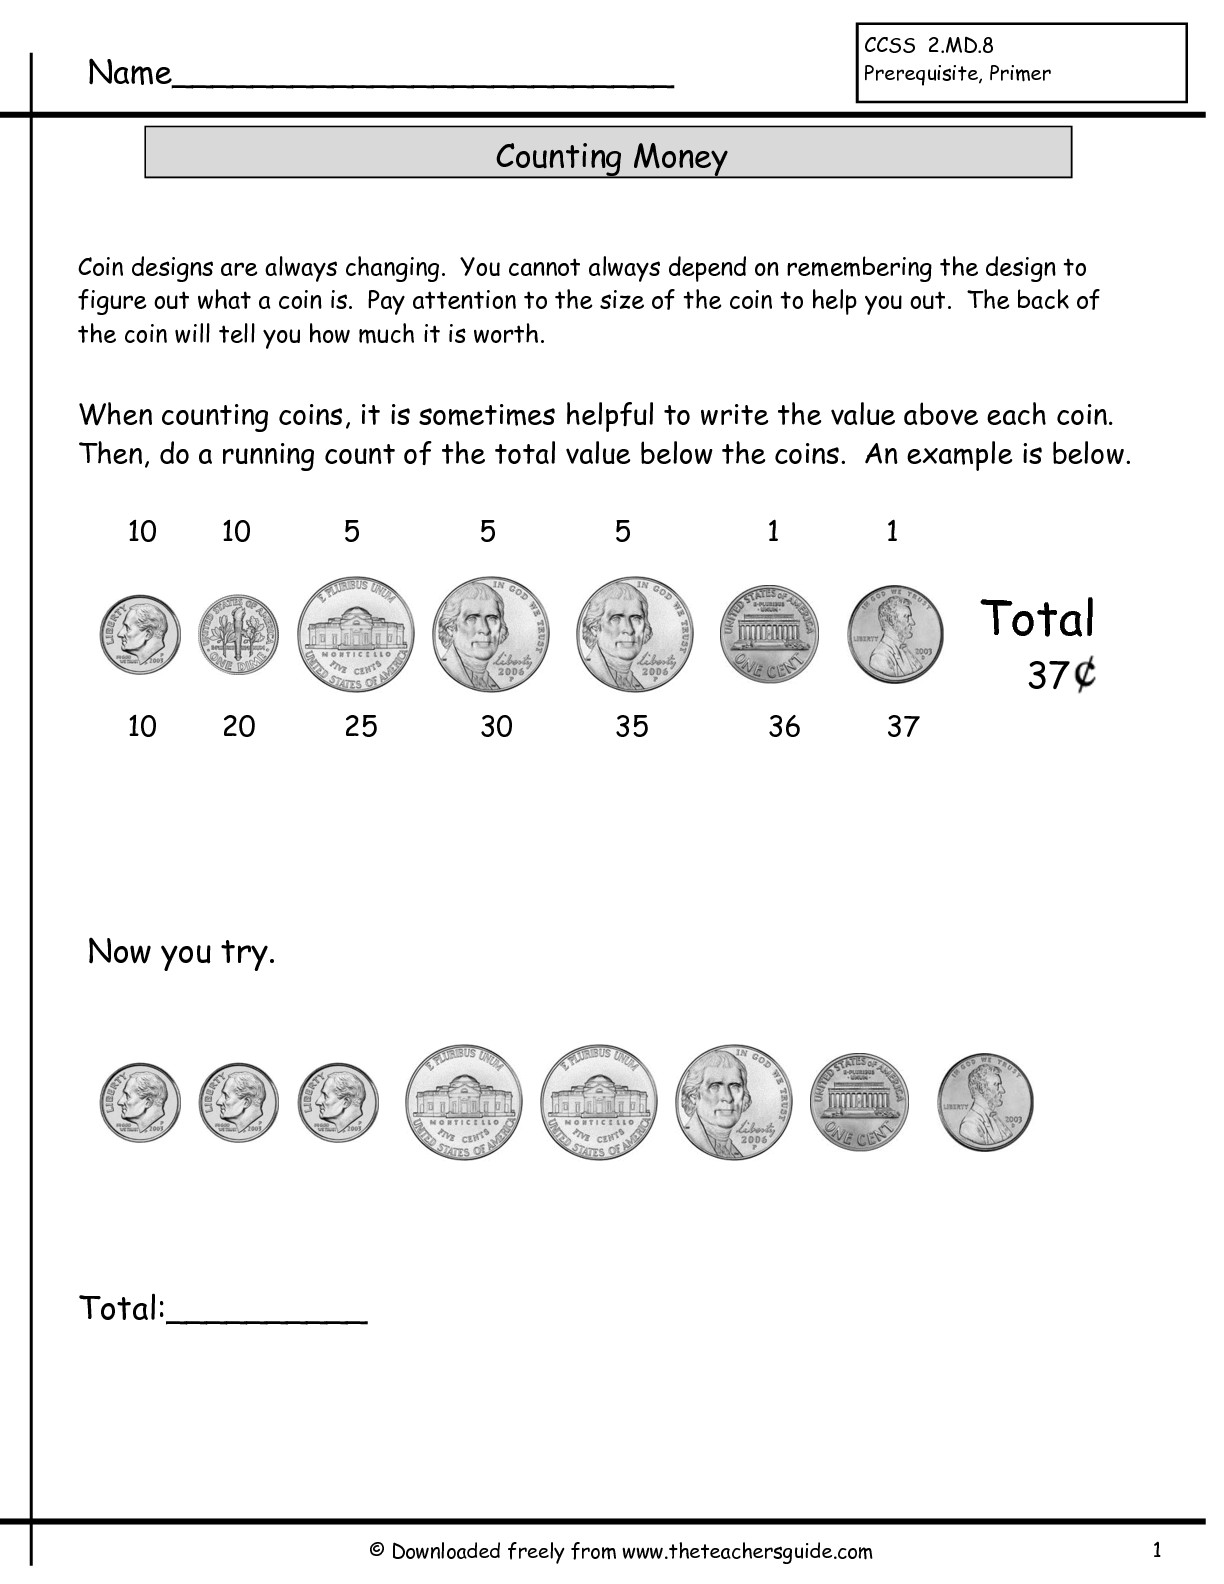 14 Best Images Of Practice Counting Money Worksheets Cashiering